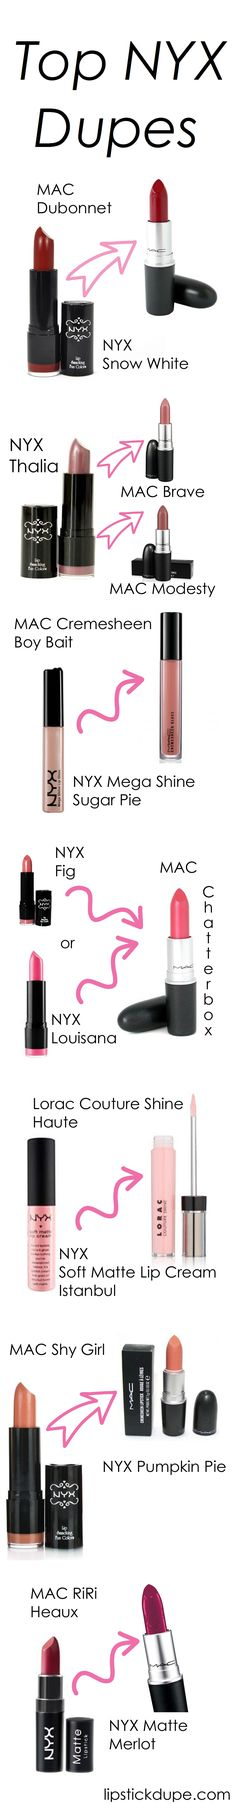 Top NYX Dupes!   Like this pin? Follow me for more @rosajoevannoy!